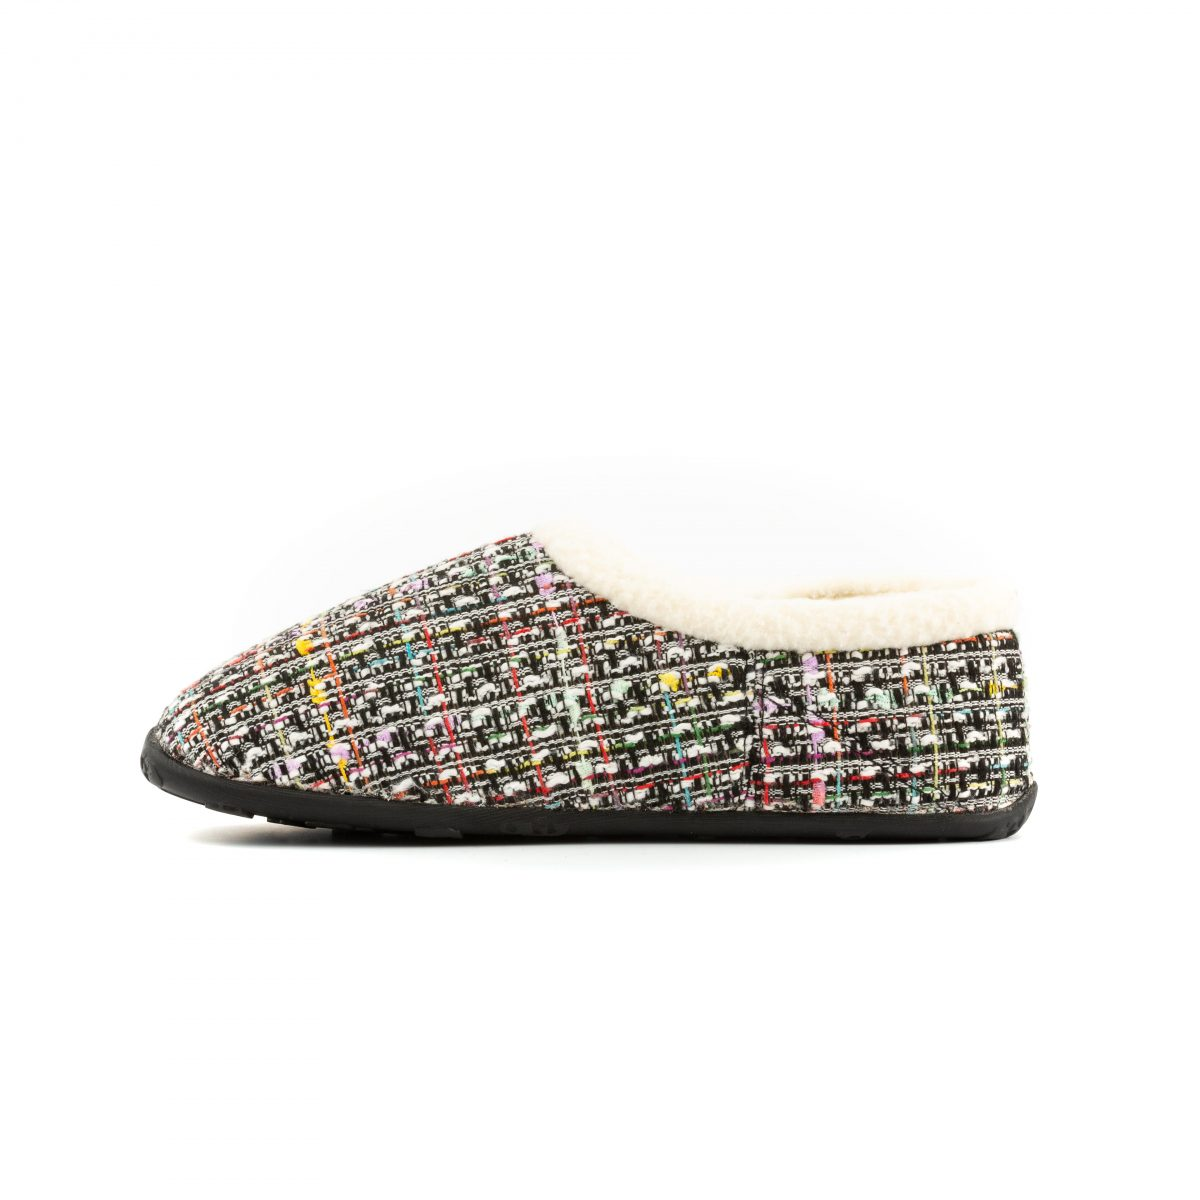 Coco Wht pnk blk tweed W 4 mr